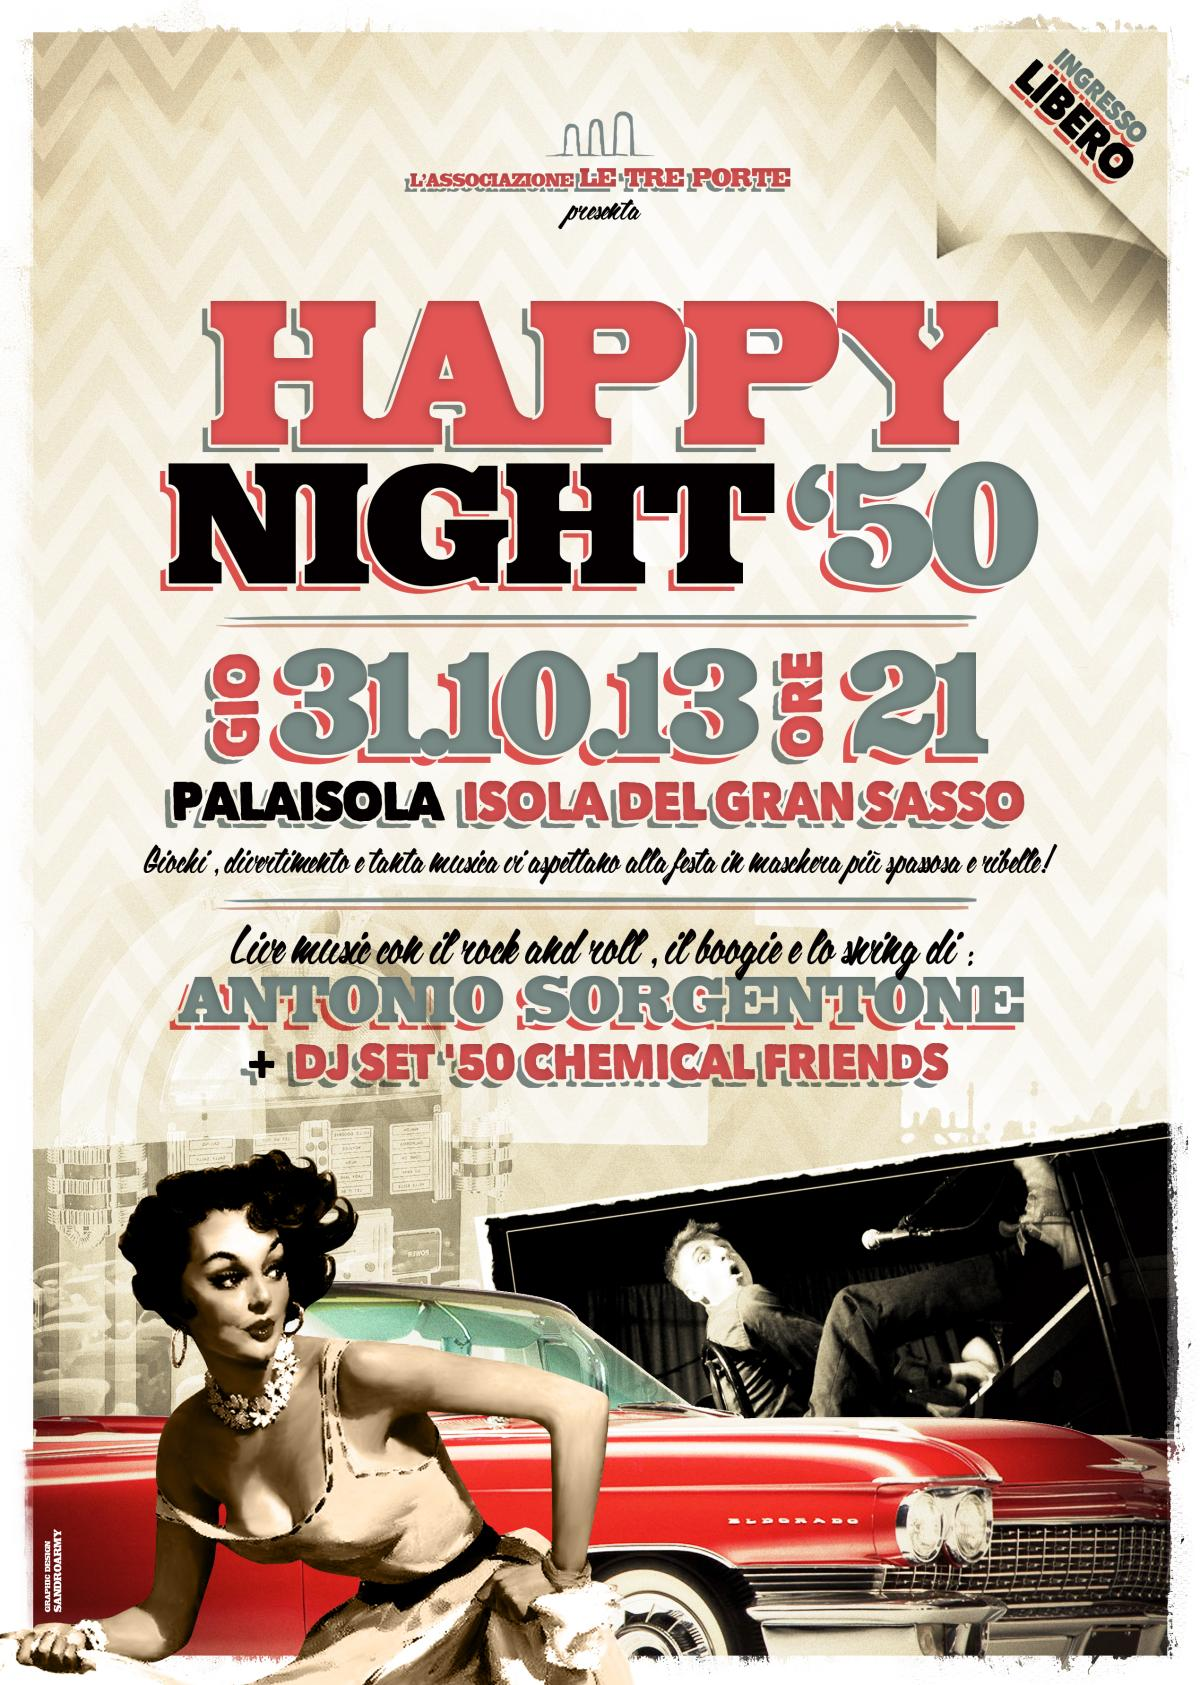 Happy Night '50 – 31.10.13